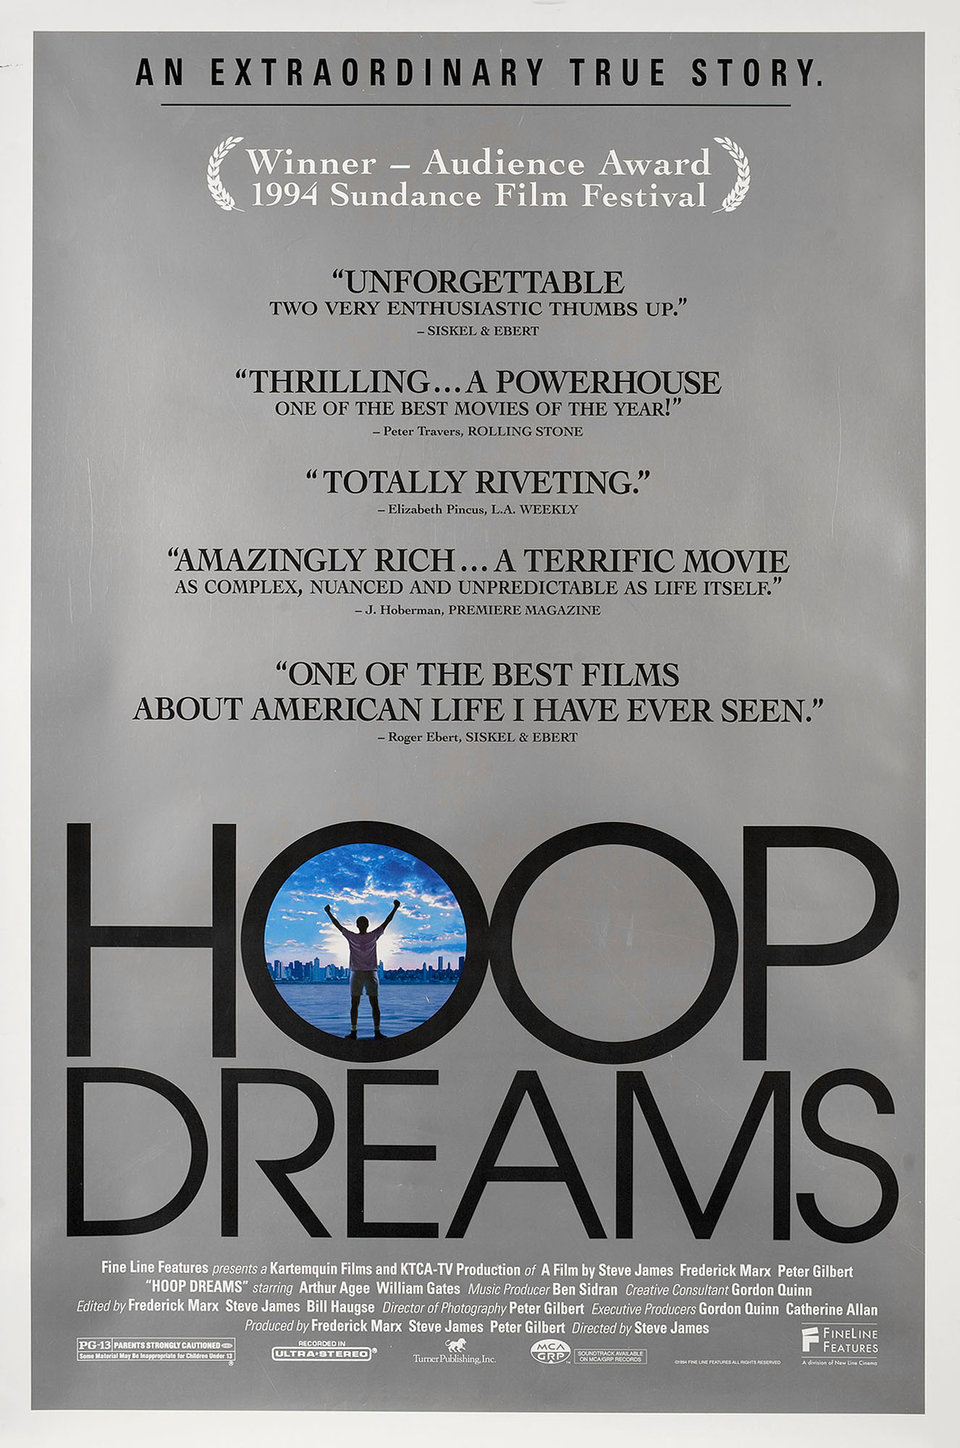 Hoop Dreams film poster